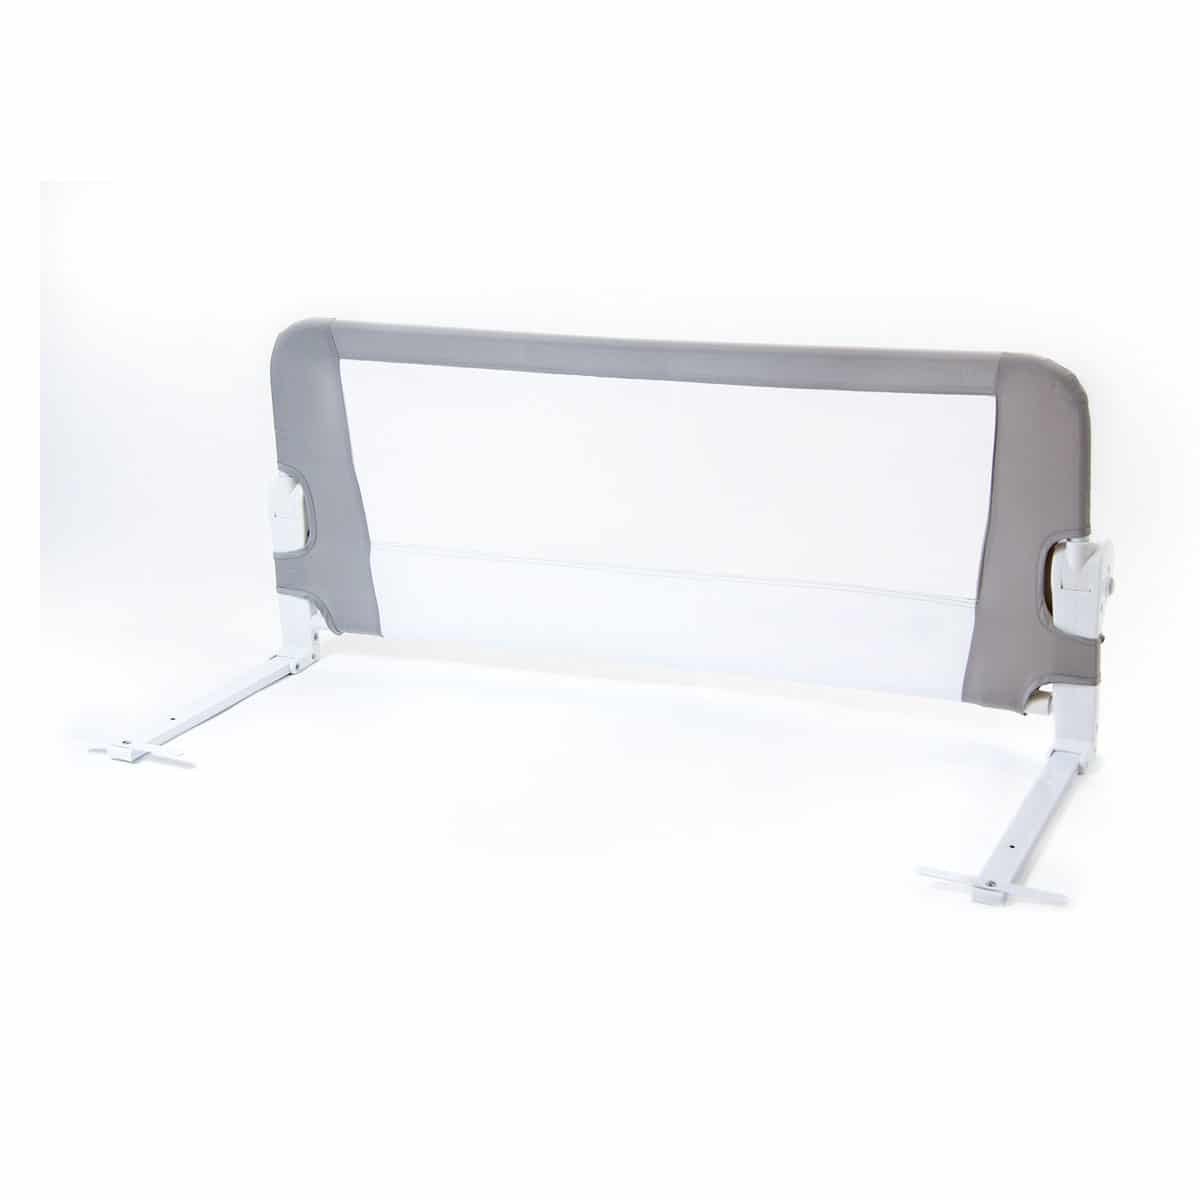 The Bed Guard can be easily attached to the base of the bed frame